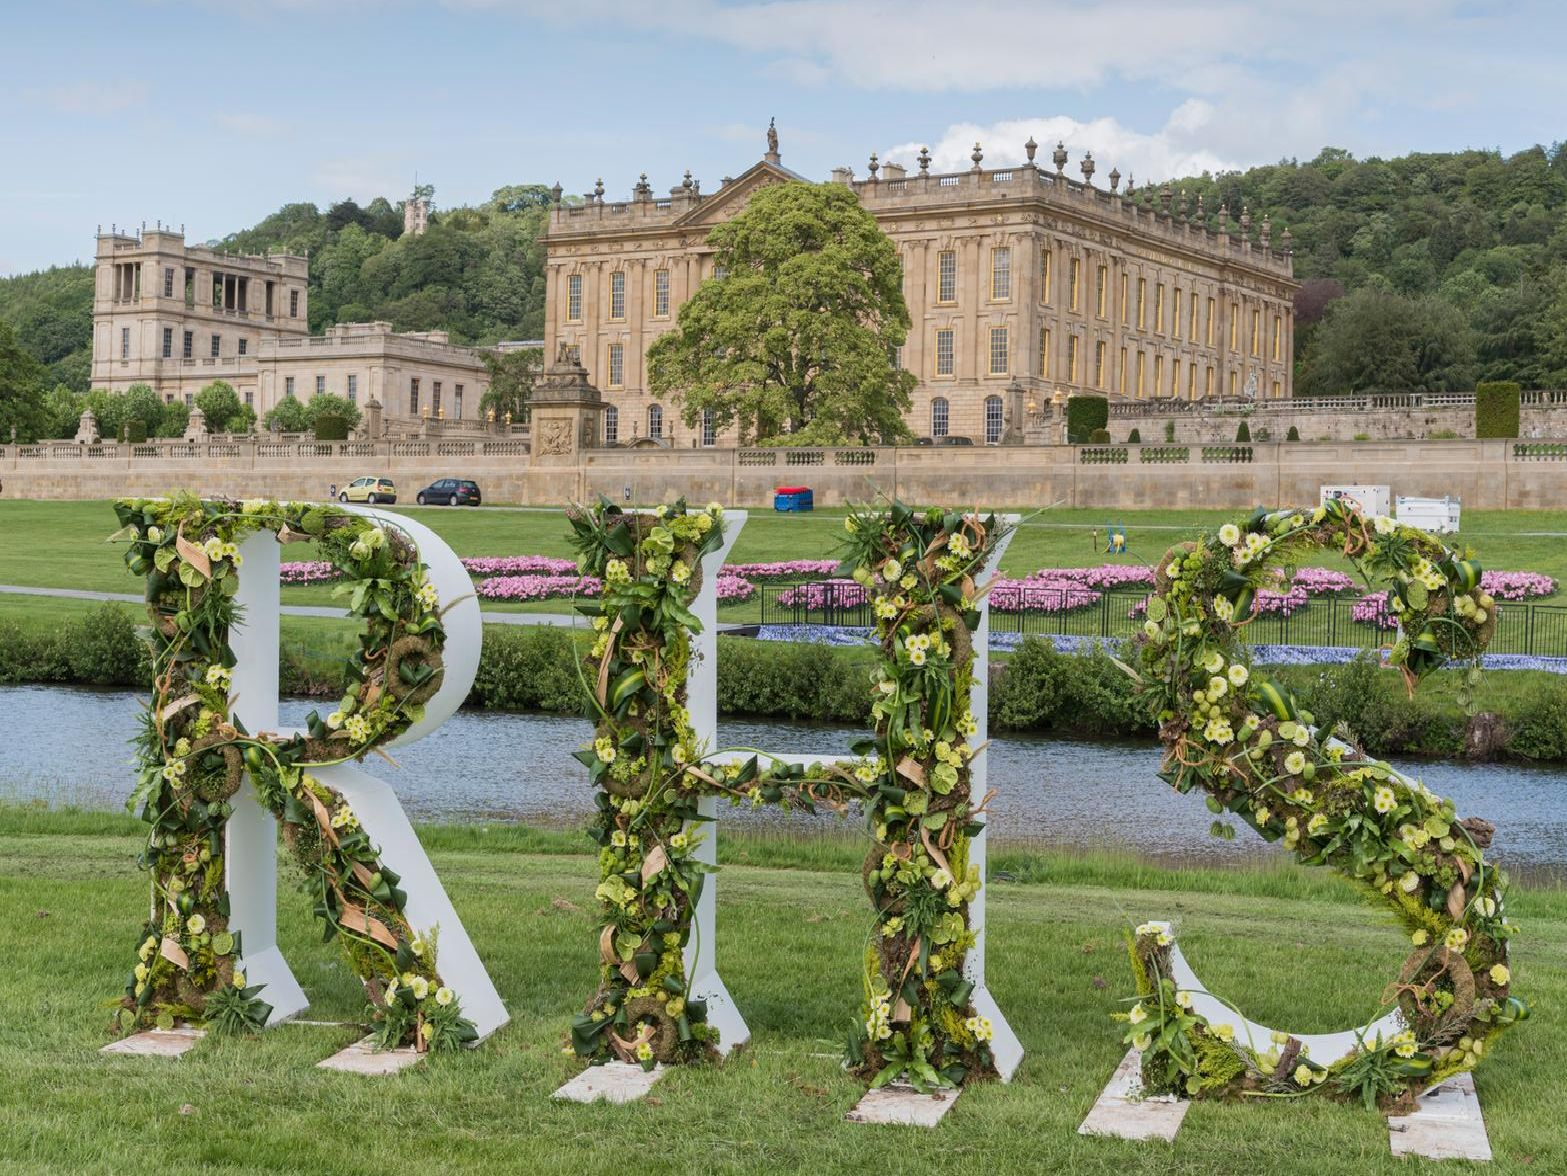 The Royal Horticultural returned to Chatsworth for its third annual flower show, June 5-9.